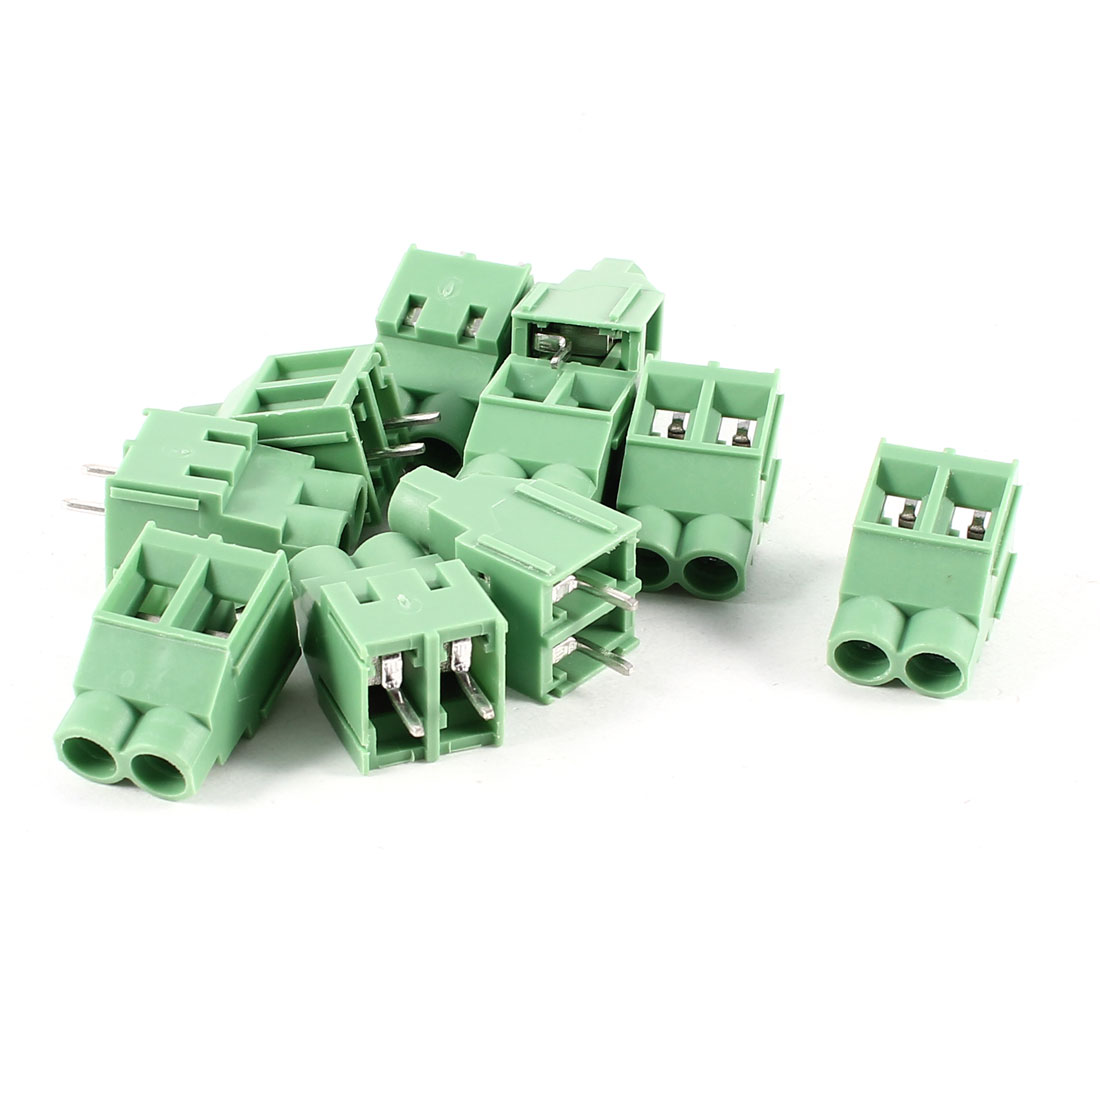 10 Pcs 2P 6.35mm Spacing PCB Screw Terminal Block Connector 300V 30A AWG22-10